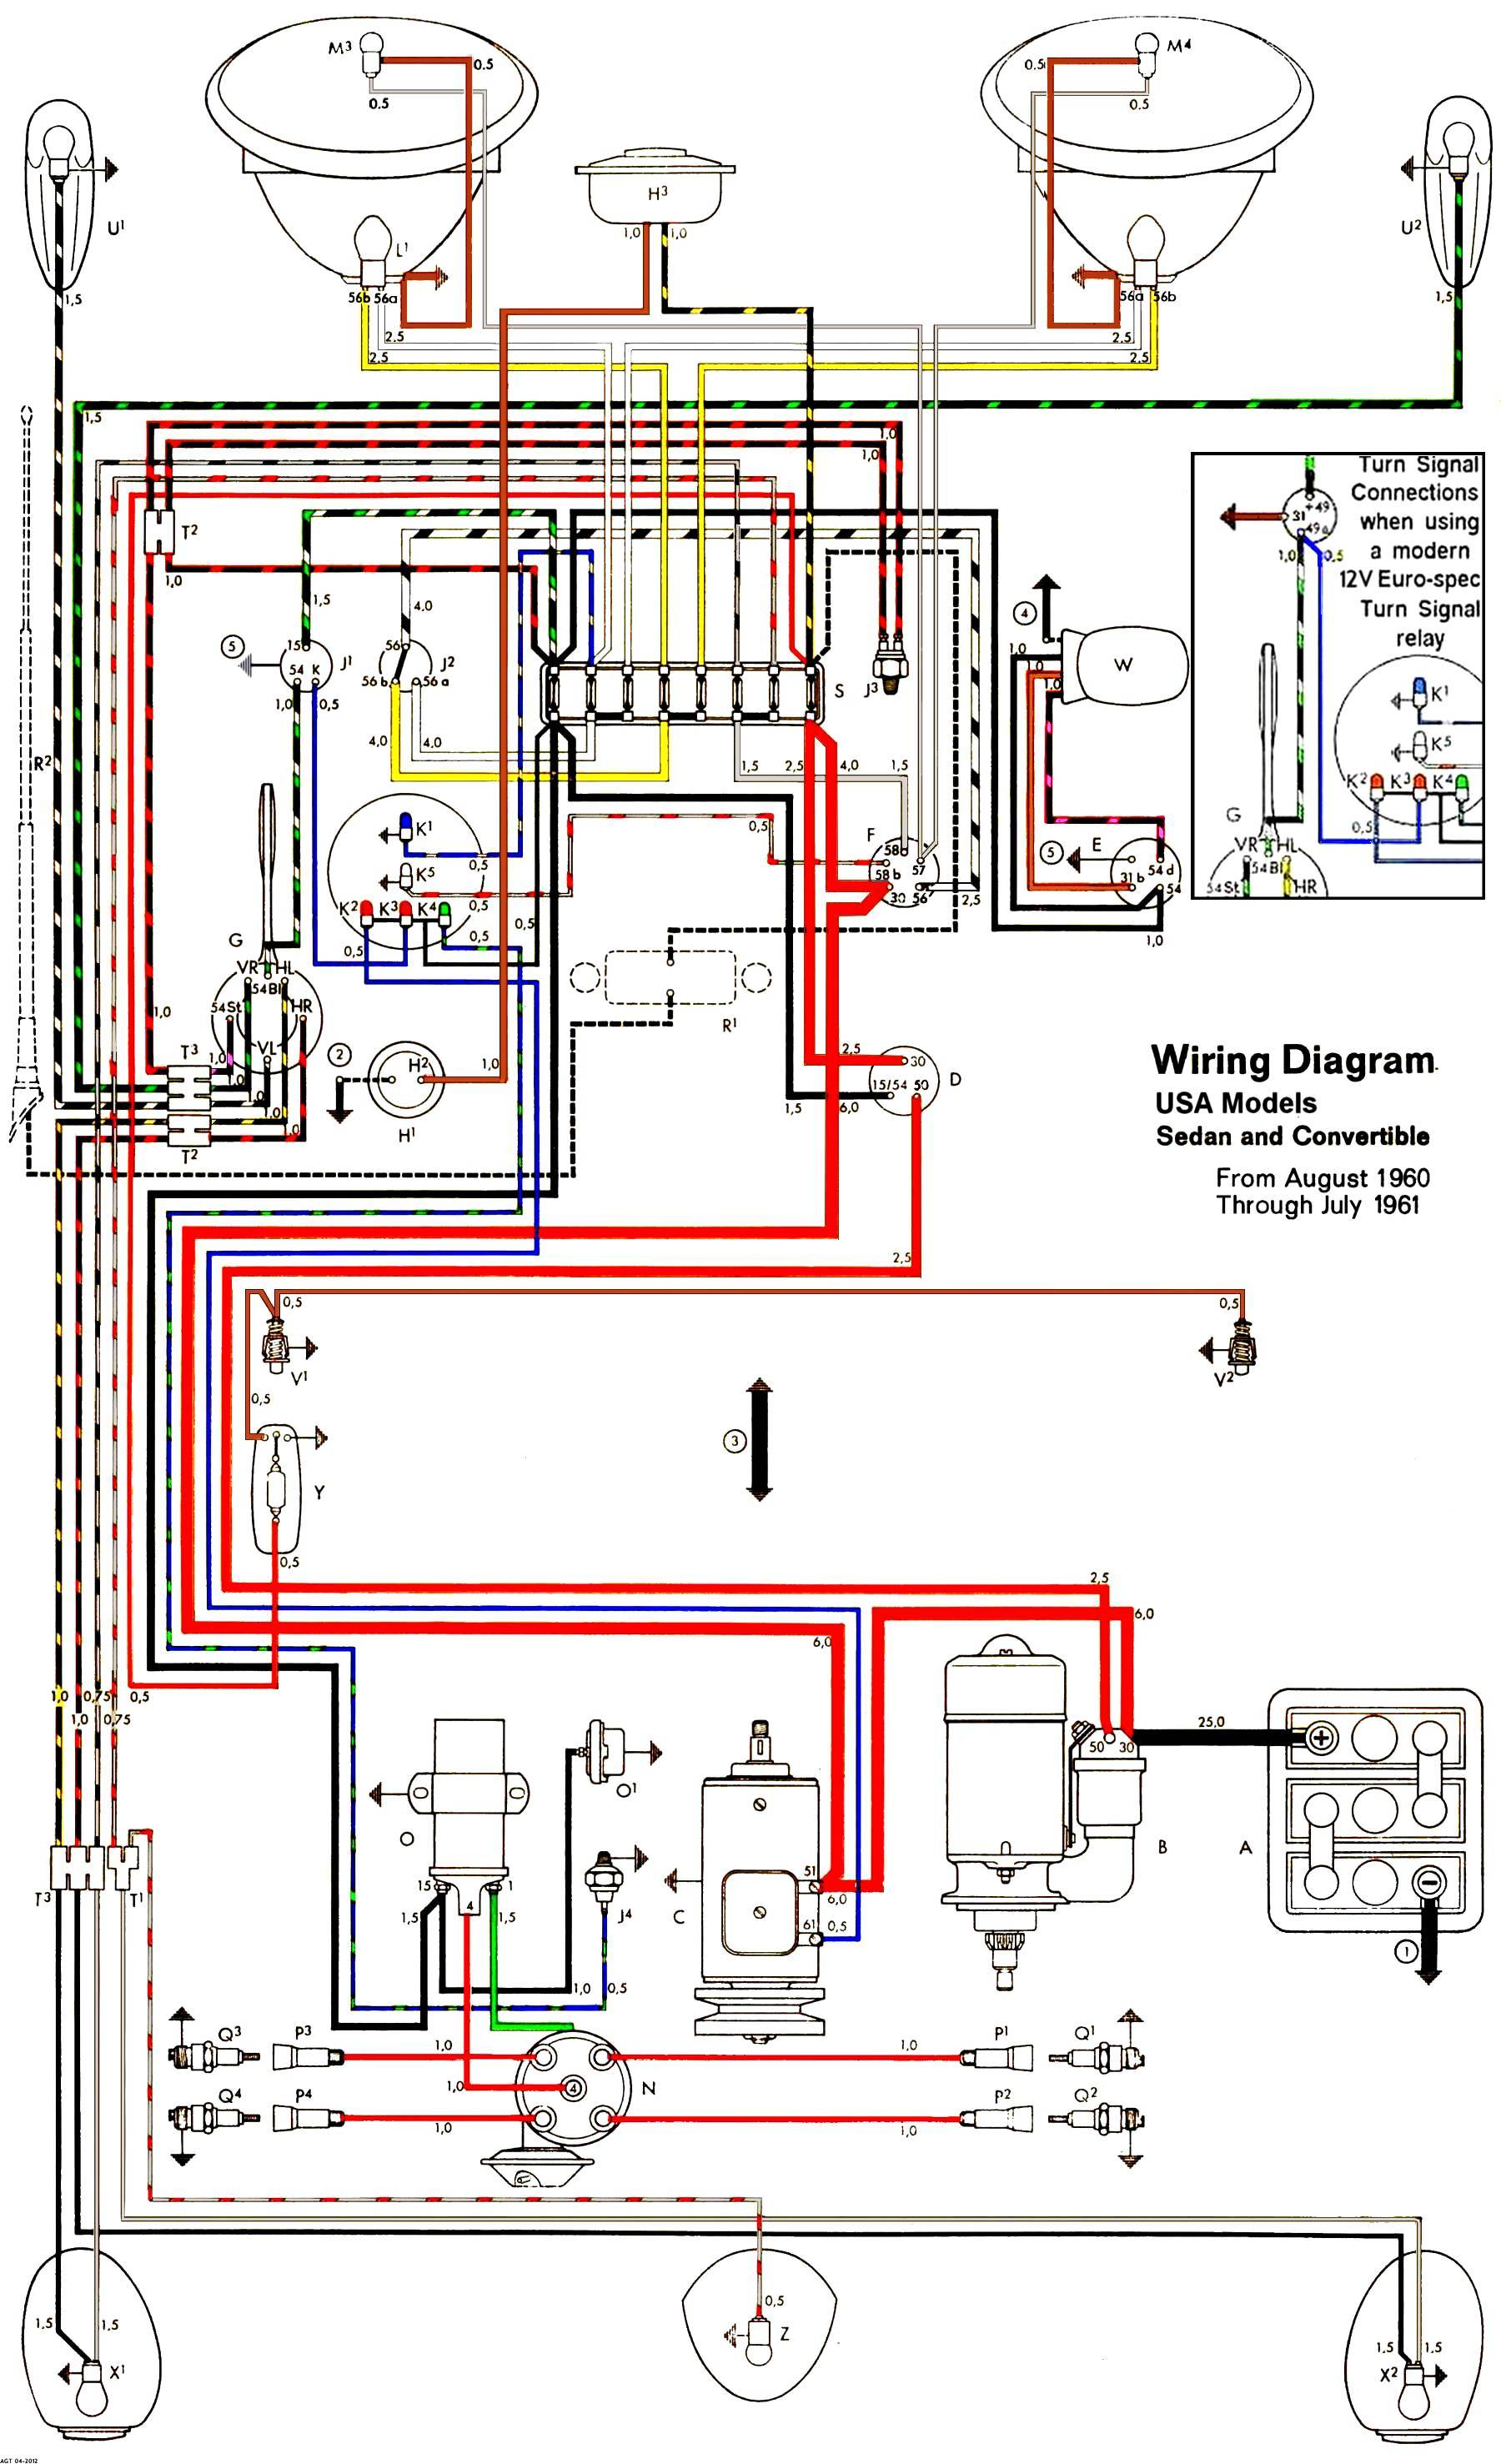 1961USA T1 thesamba com type 1 wiring diagrams VW Alternator Hook Up at reclaimingppi.co